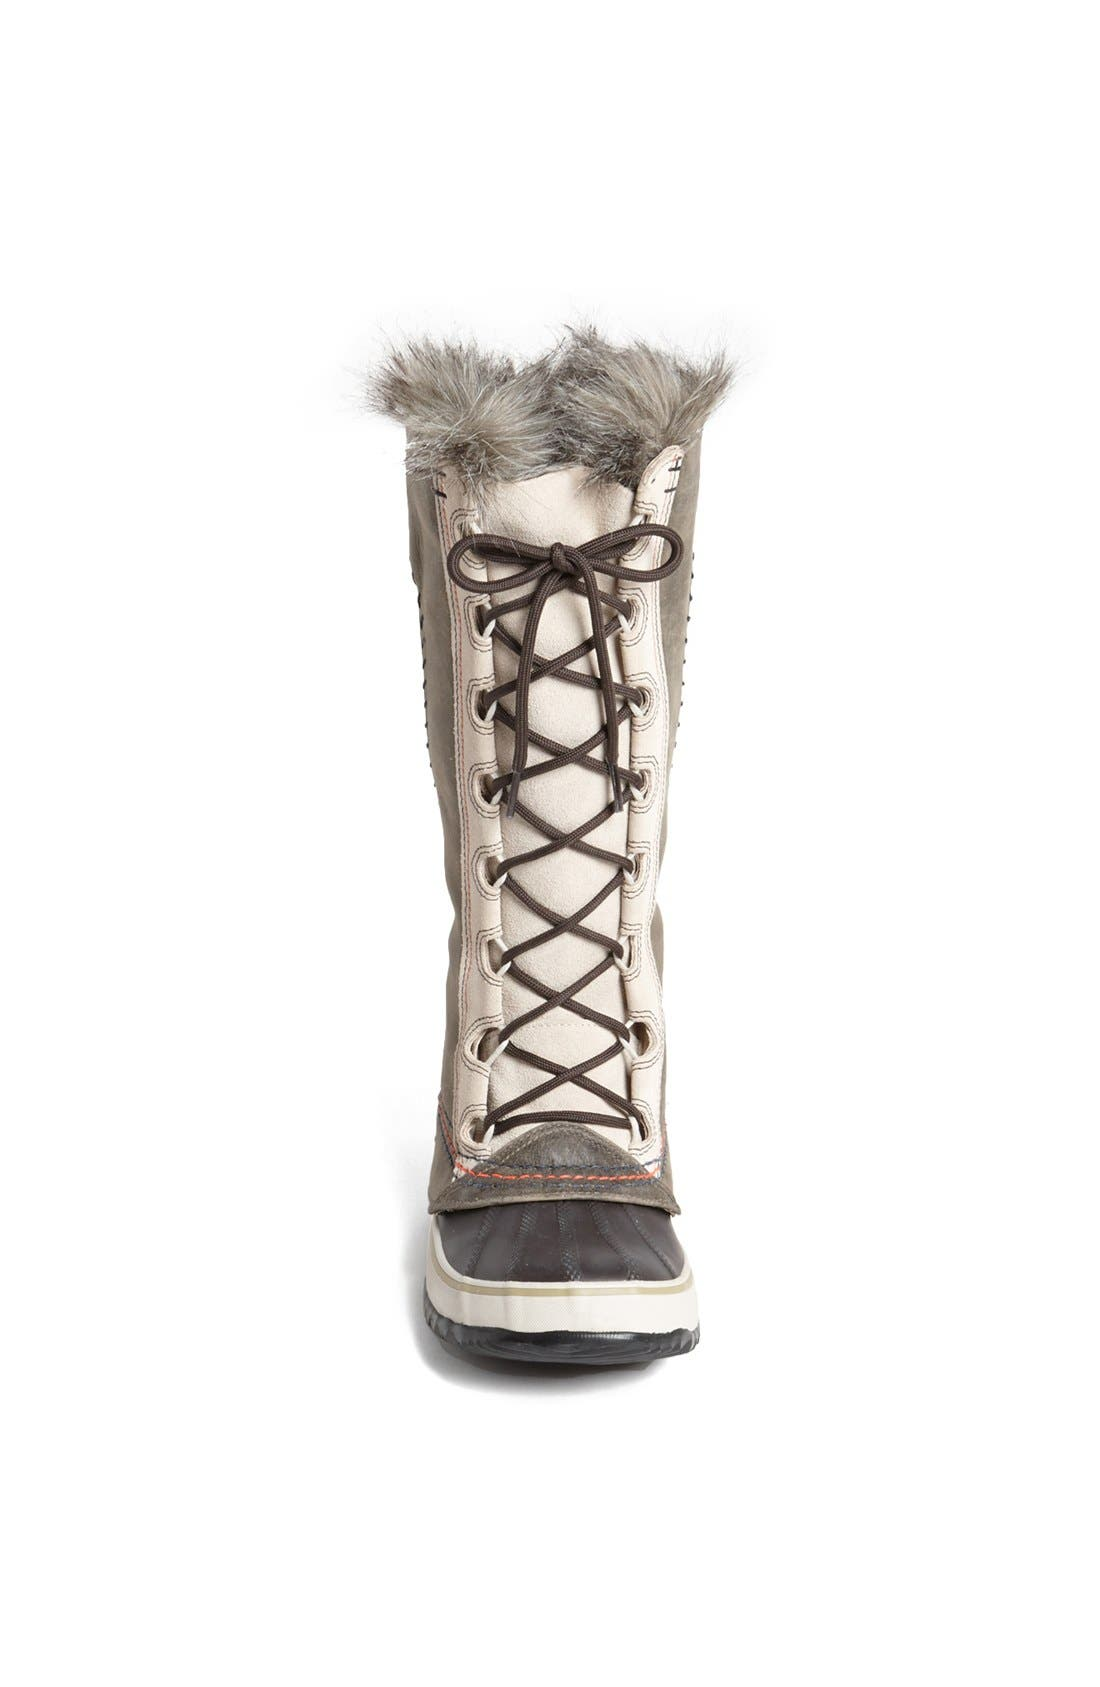 'Cate the Great - Deco' Waterproof Suede Duck Boot,                             Alternate thumbnail 4, color,                             099